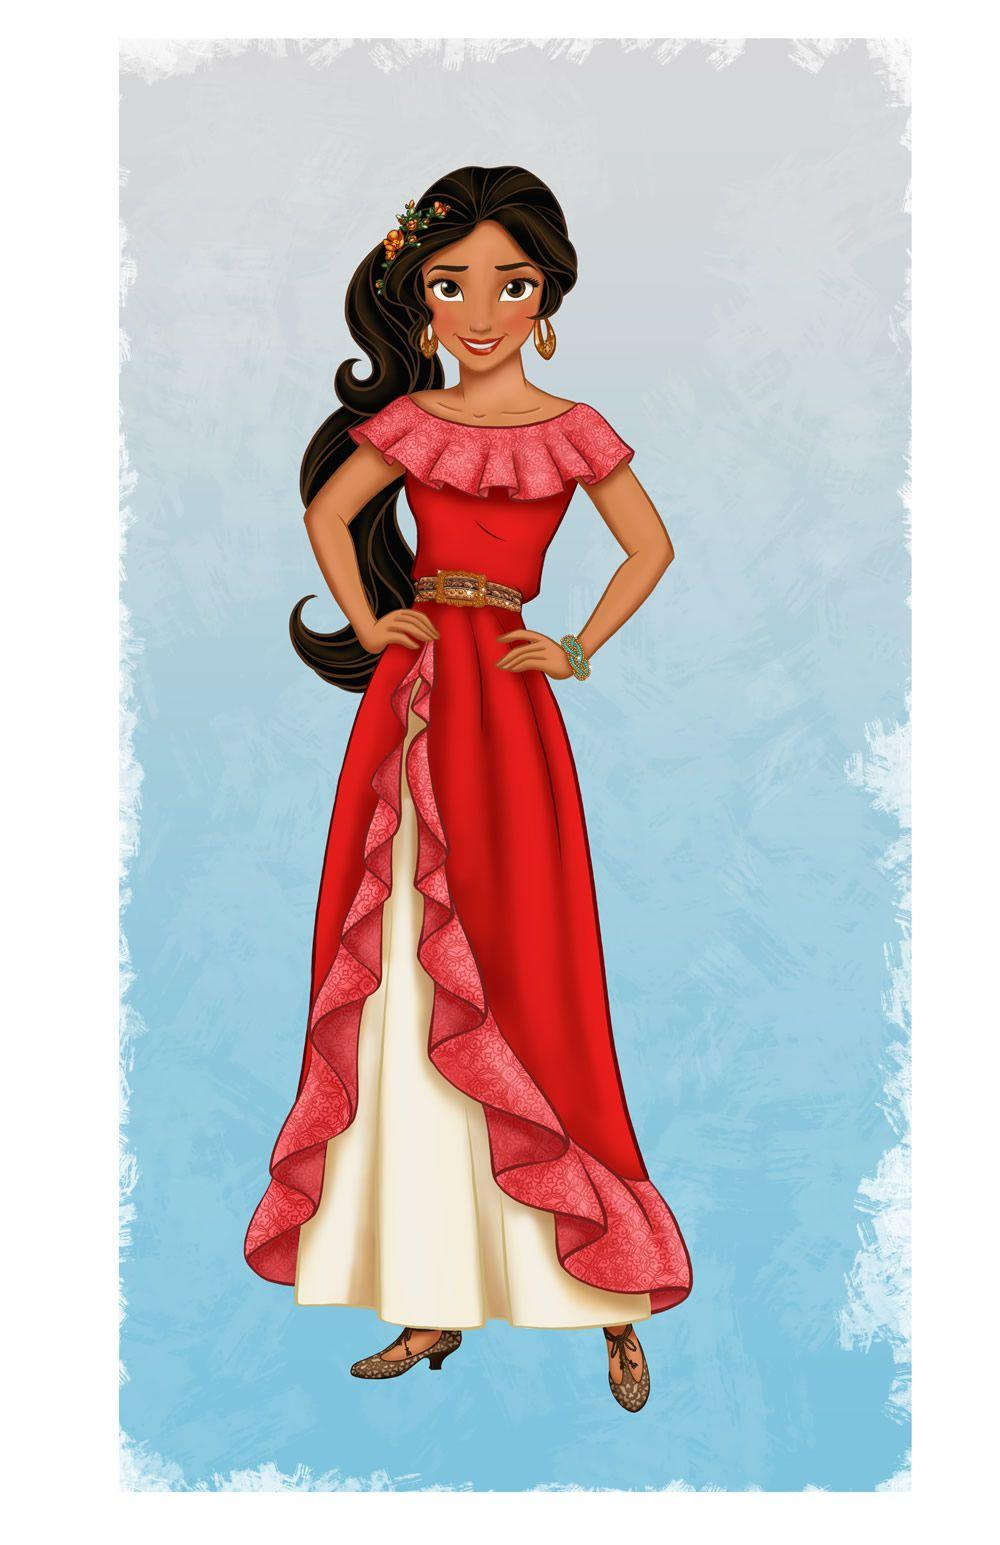 Meet Disney's Newest Princess, Elena of Avalor!